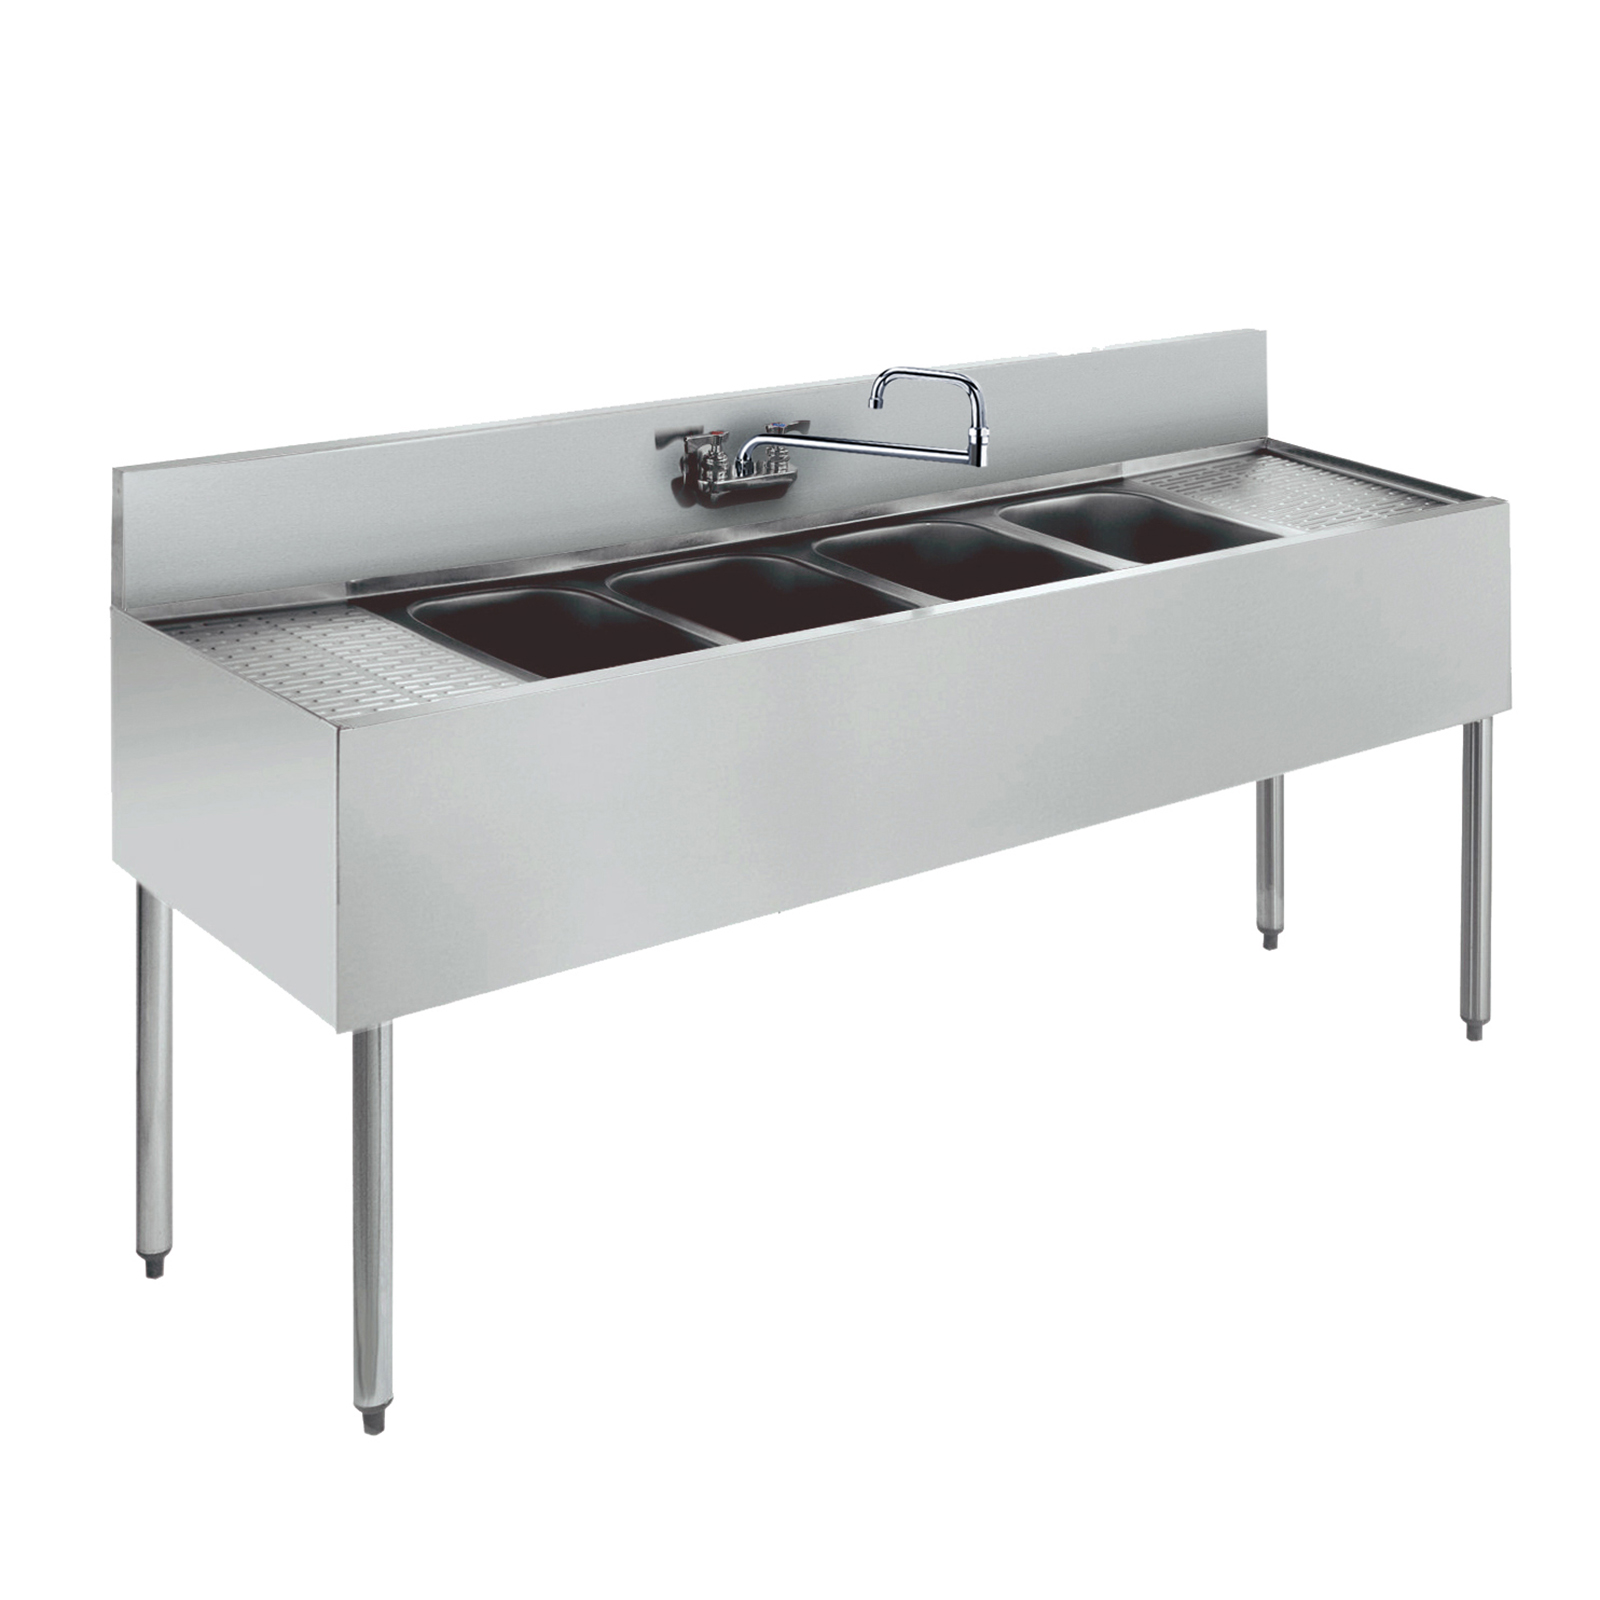 Krowne Metal KR19-74C underbar sink units